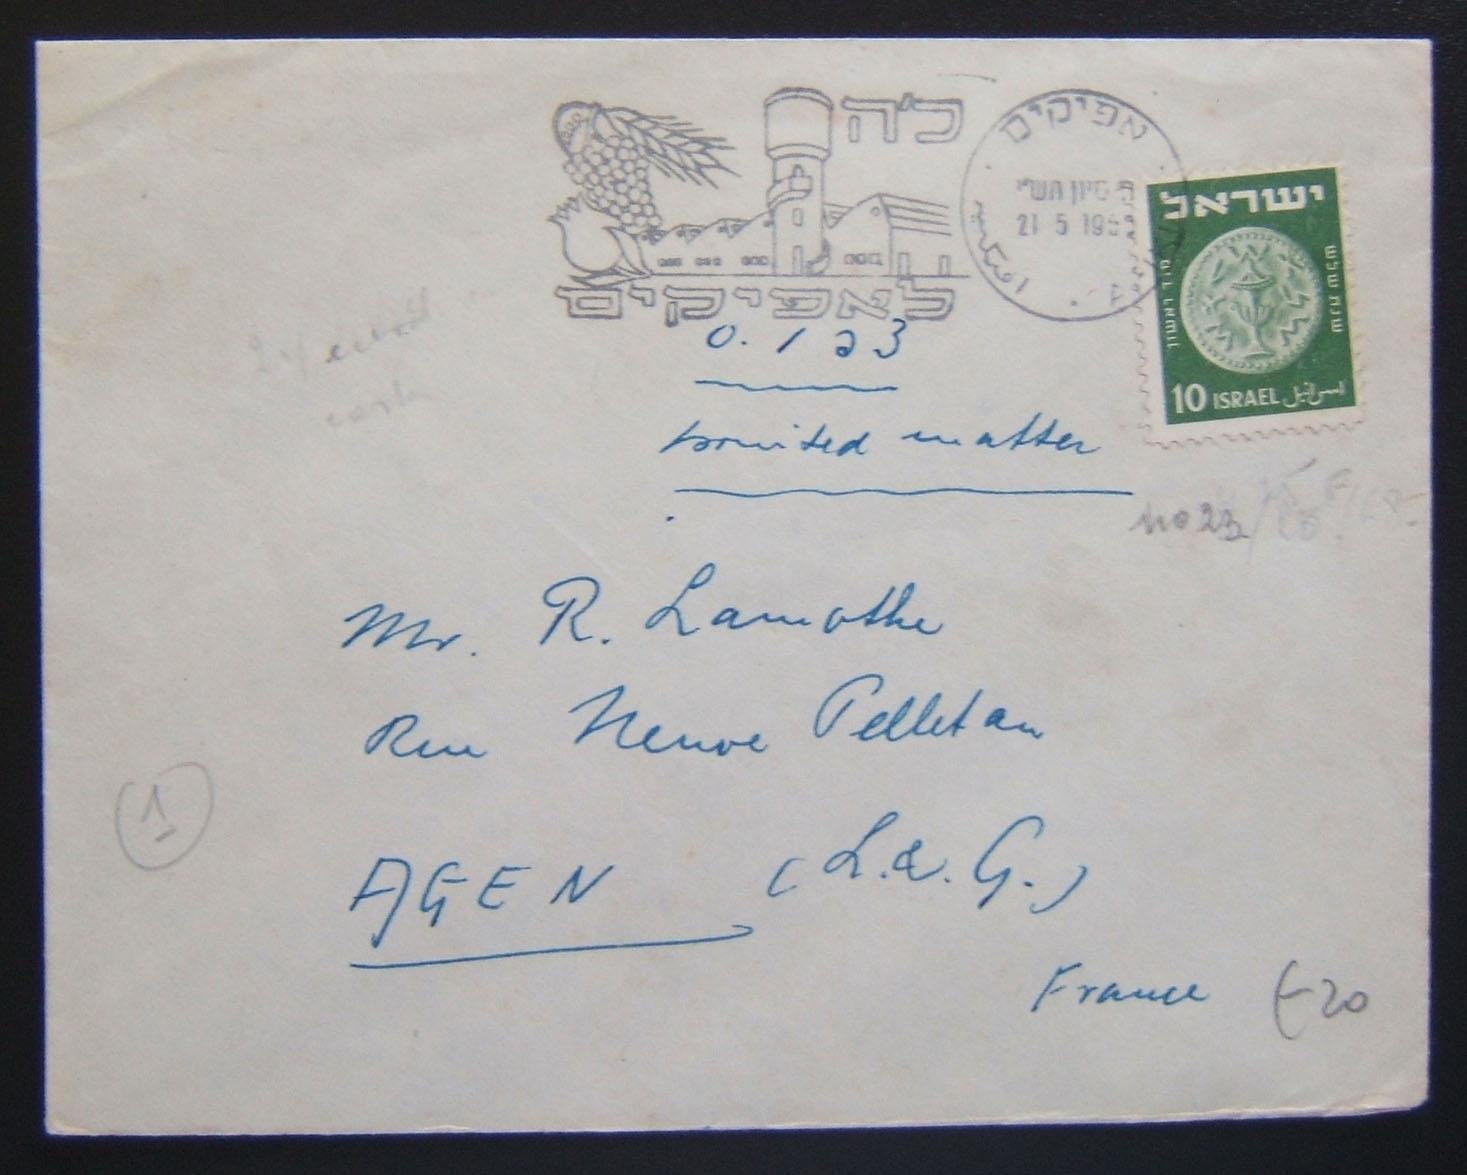 1950 2nd Coinage printed matter surface mail: 21-5-1950 pm cover ex AFIKIM to FRANCE franked 10pr per SU-2 period pm rate using 10pr Ba23 tied by first day use of Afikim 25th anniv